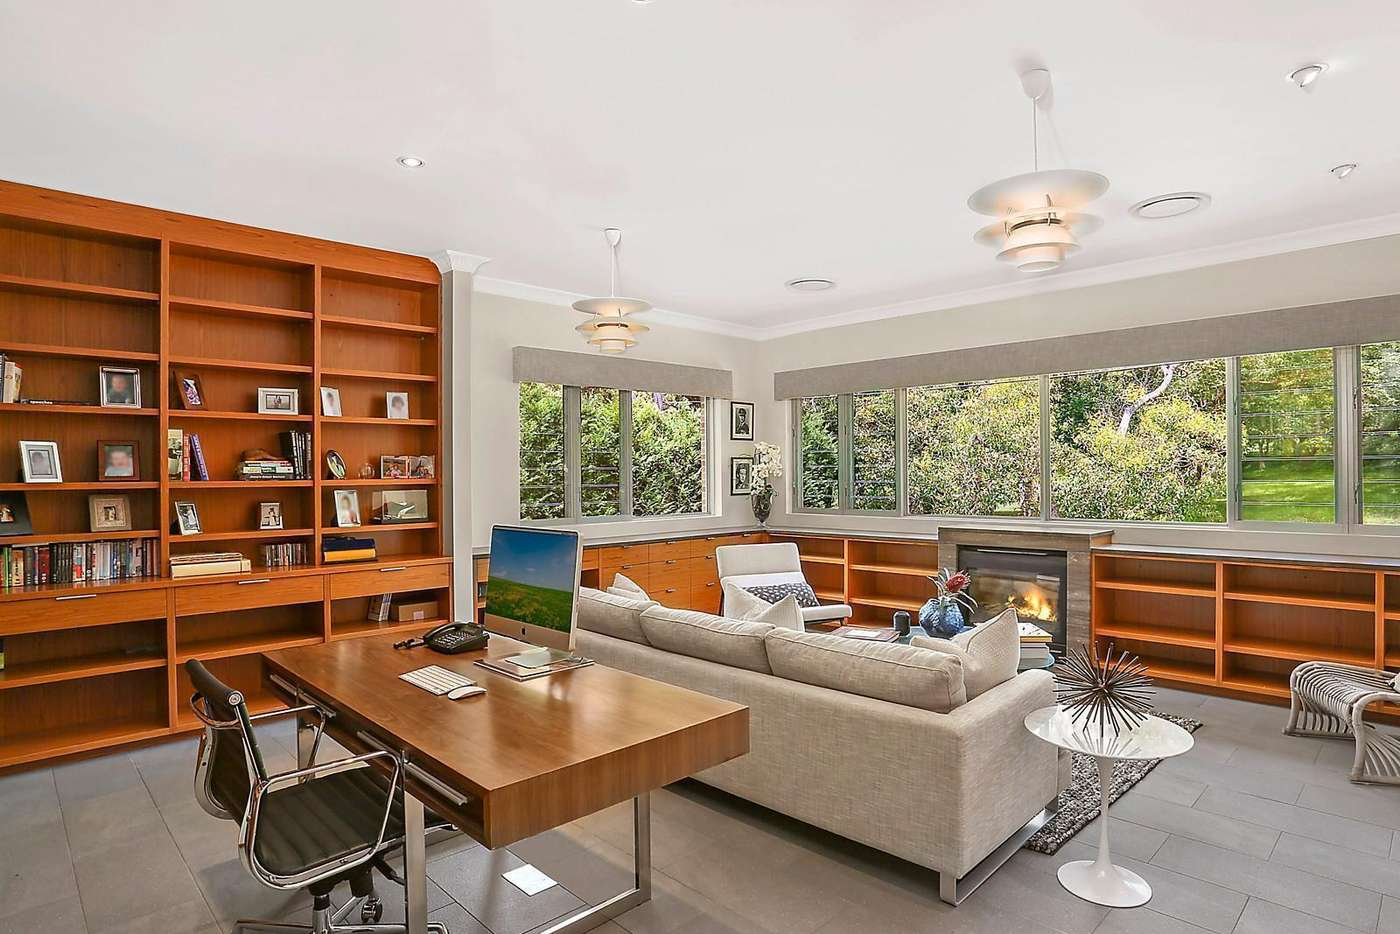 Sixth view of Homely house listing, 6 Coolong Road, Vaucluse NSW 2030